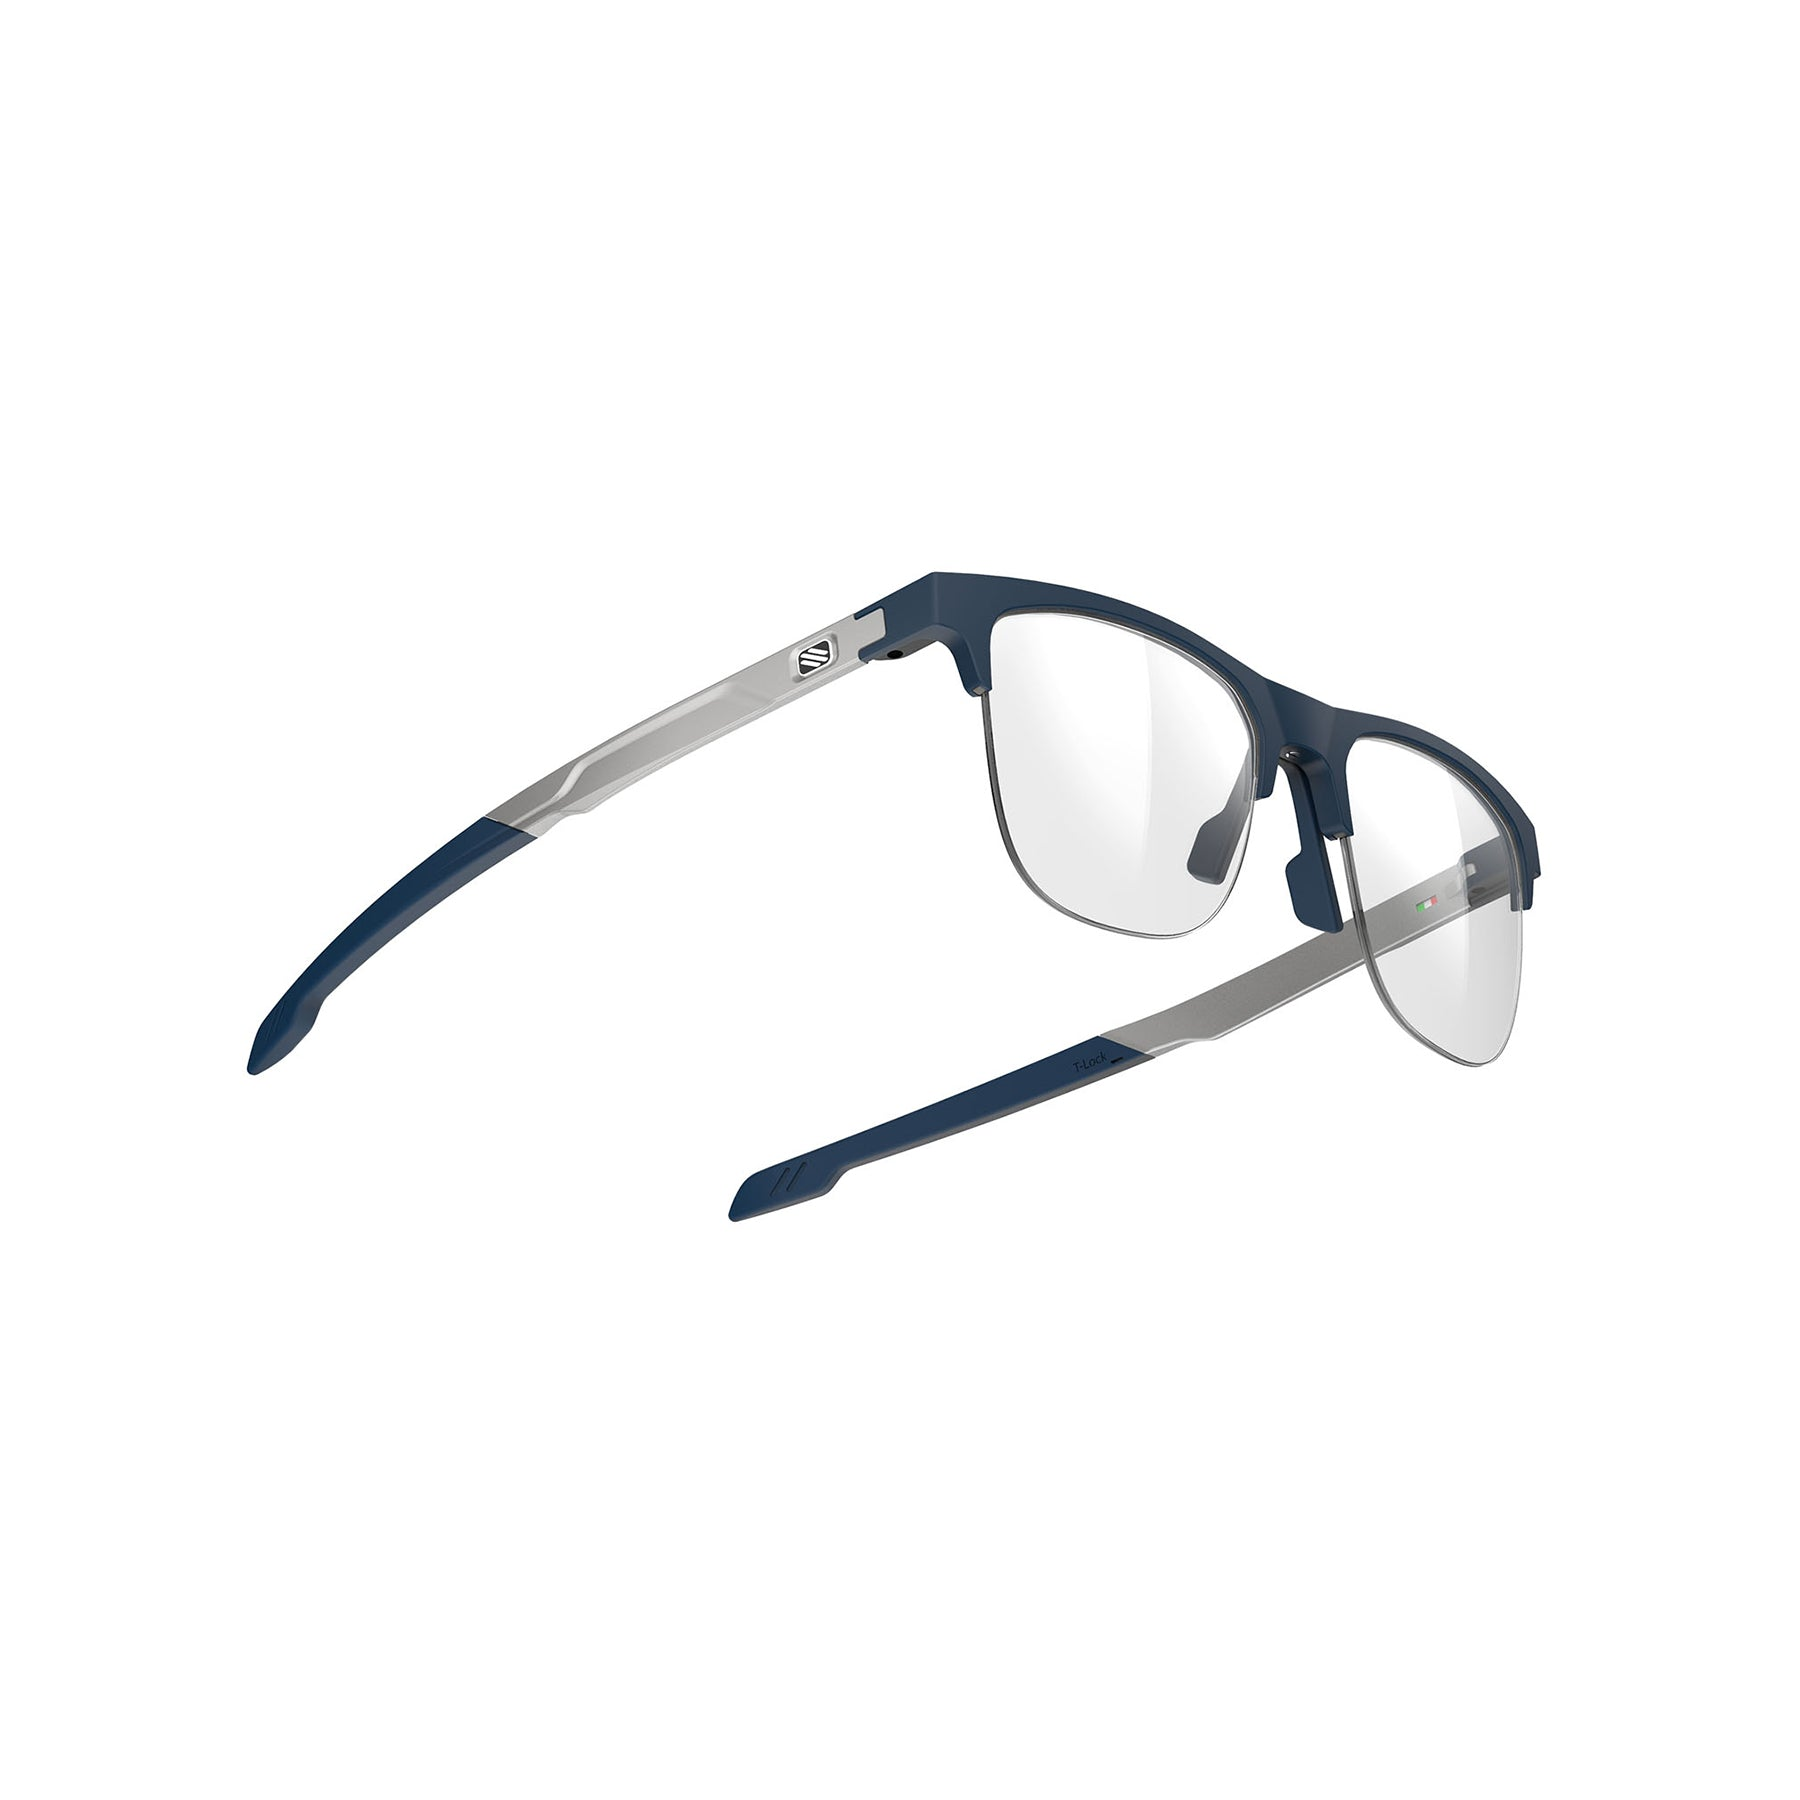 Rudy Project - Inkas XL - frame color: Blue Navy - lens color: Half Rim Shape B - photo angle: Bottom Front Angle Variant Hover Image